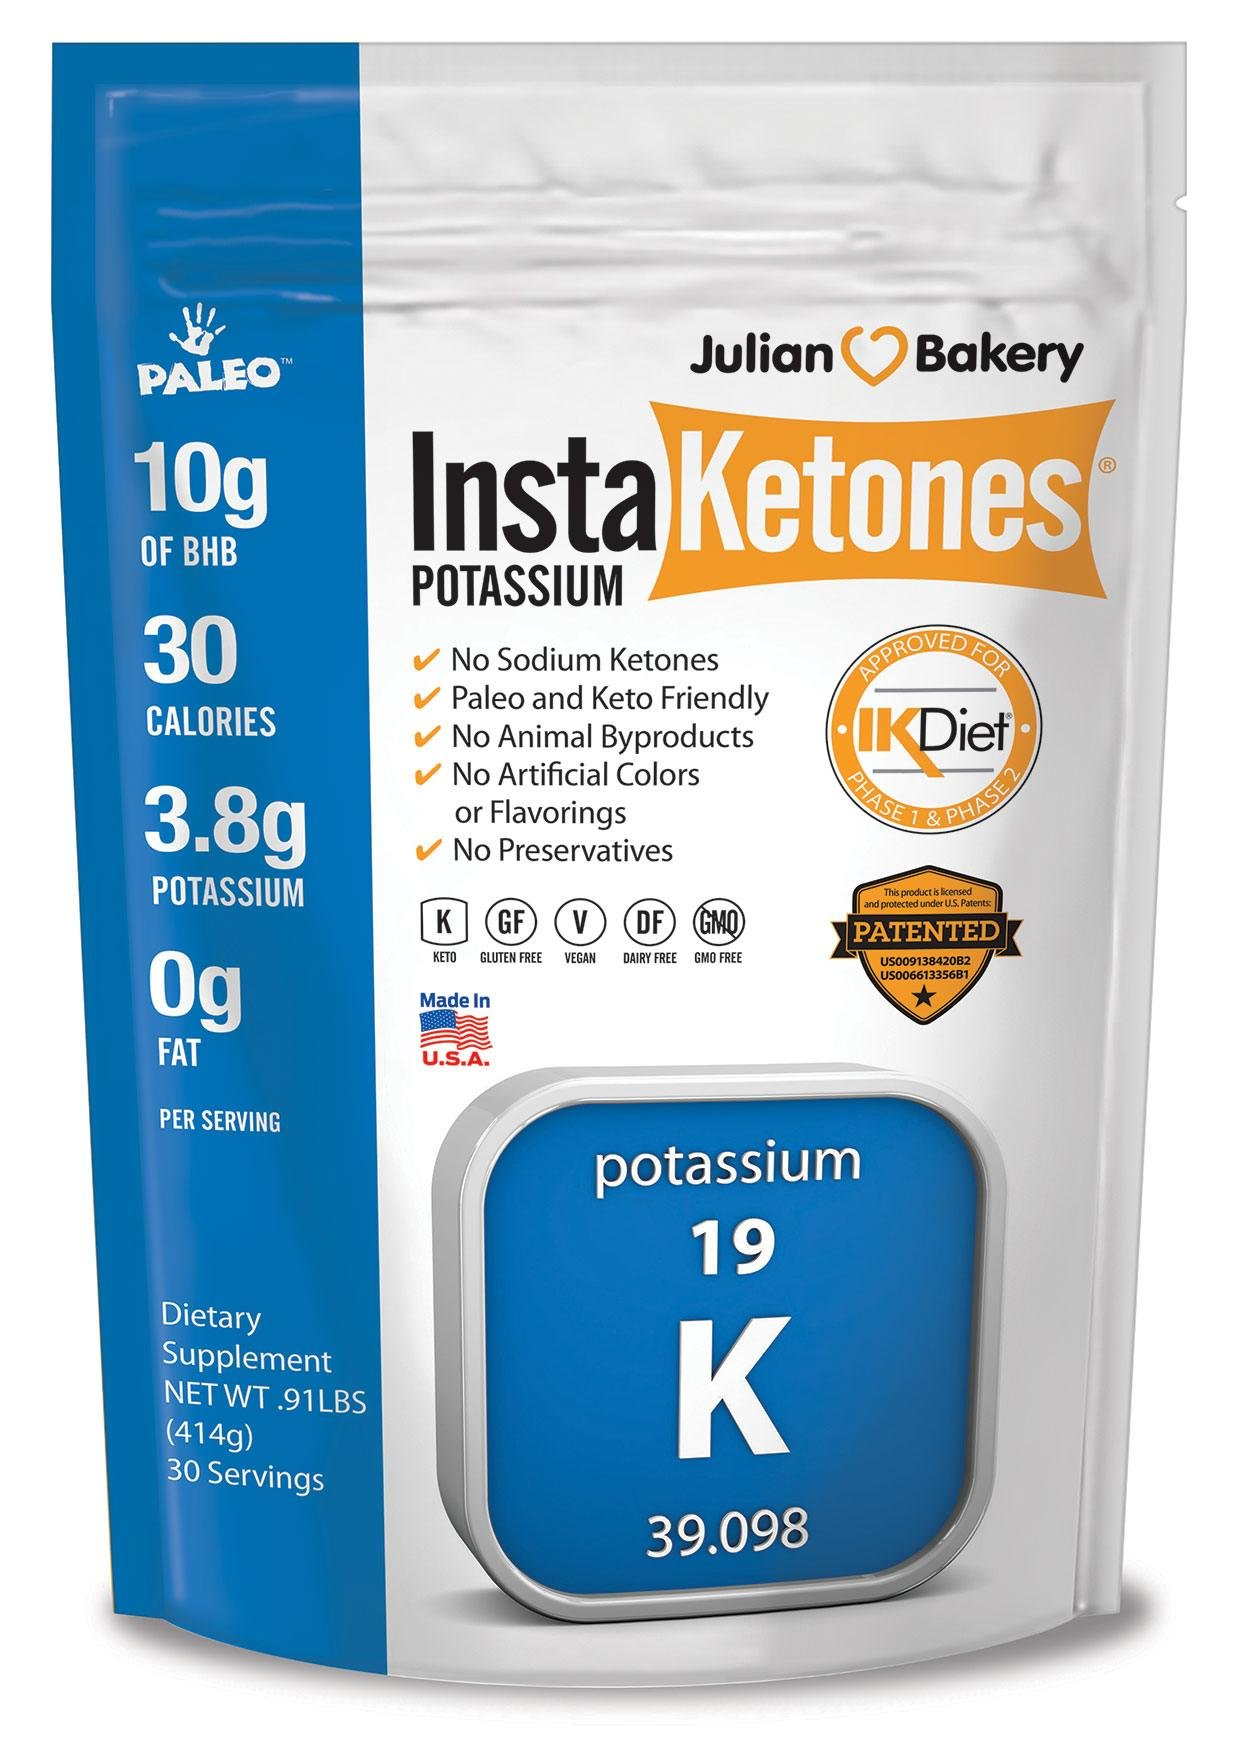 InstaKetones® 10g GoBHB®+ Potassium Per Scoop (Sodium Free) (30 Servings) Exogenous Ketones by Julian Bakery